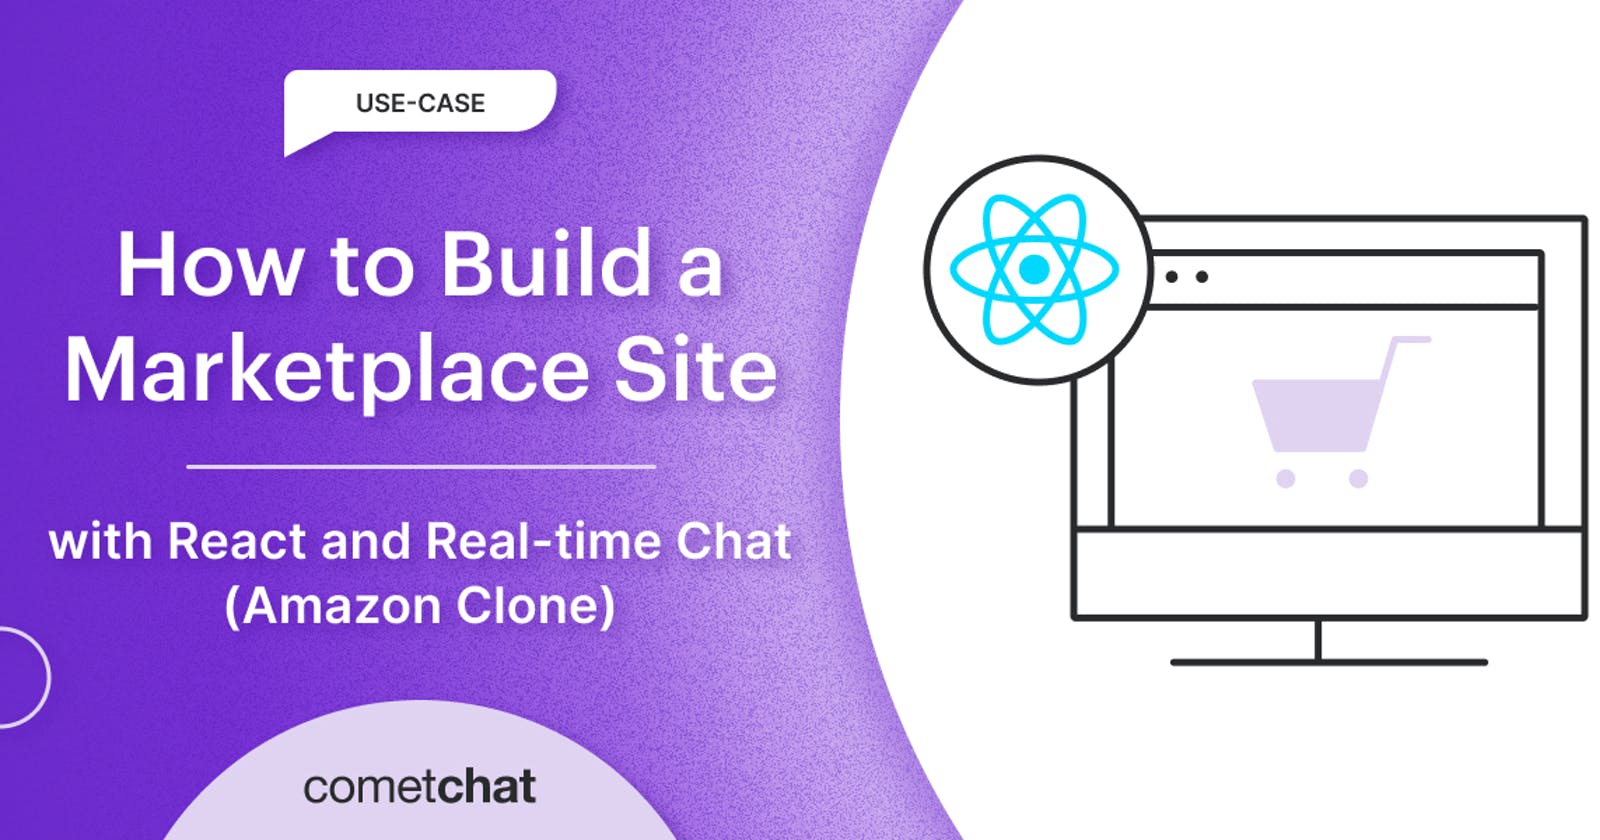 📝 CometChat tutorial: Marketplace Site With React and Real-time Chat (Amazon Clone)